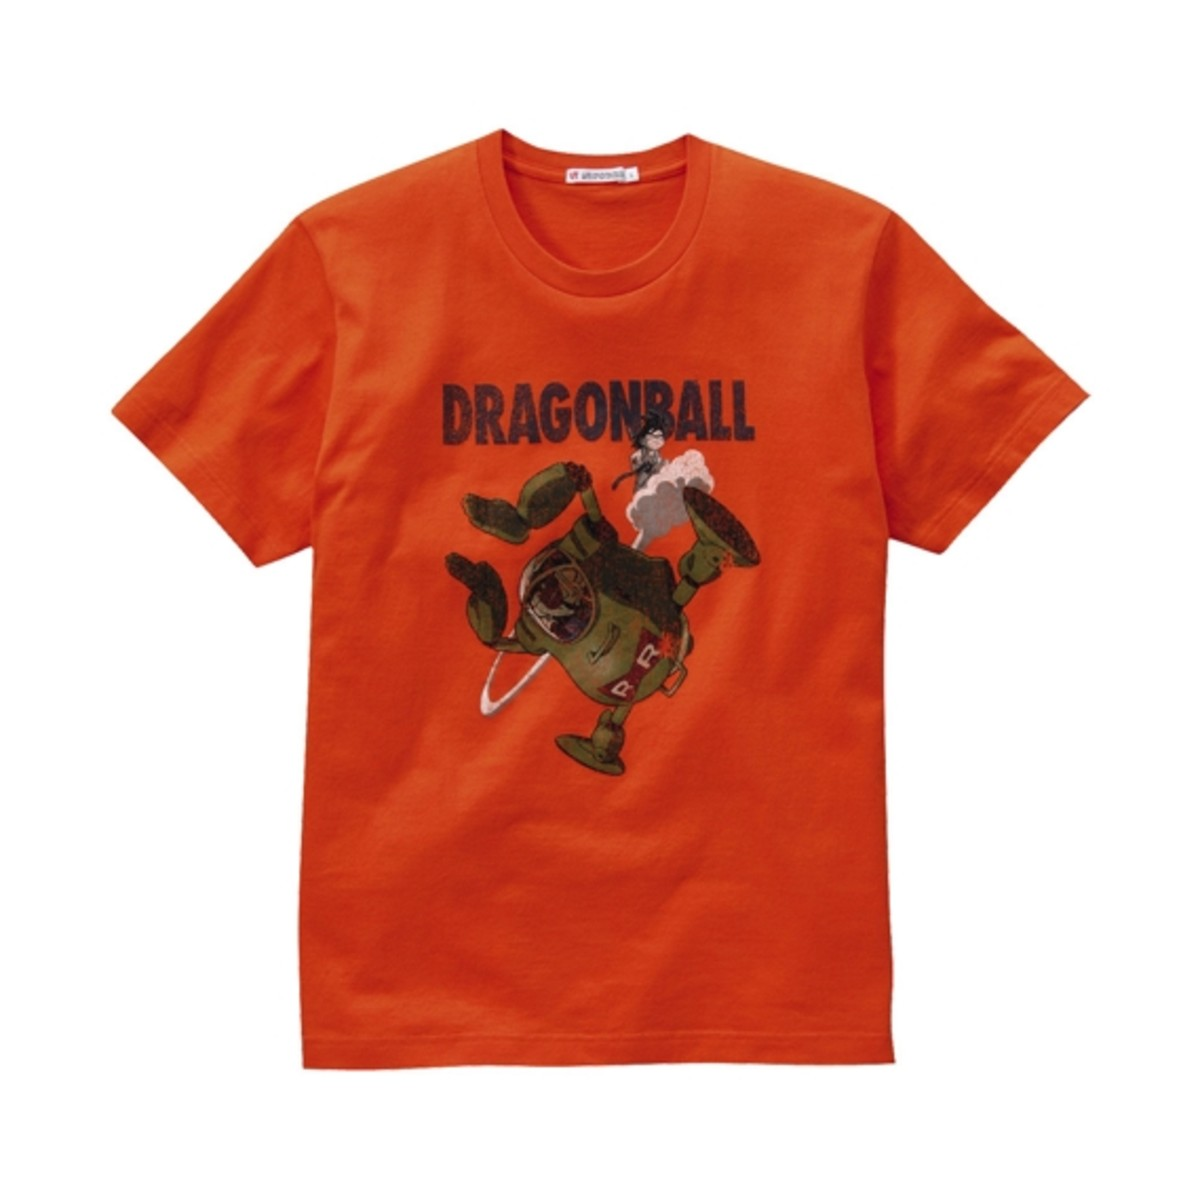 UNIQLO x Dragon Ball - T-Shirt Collection - 1